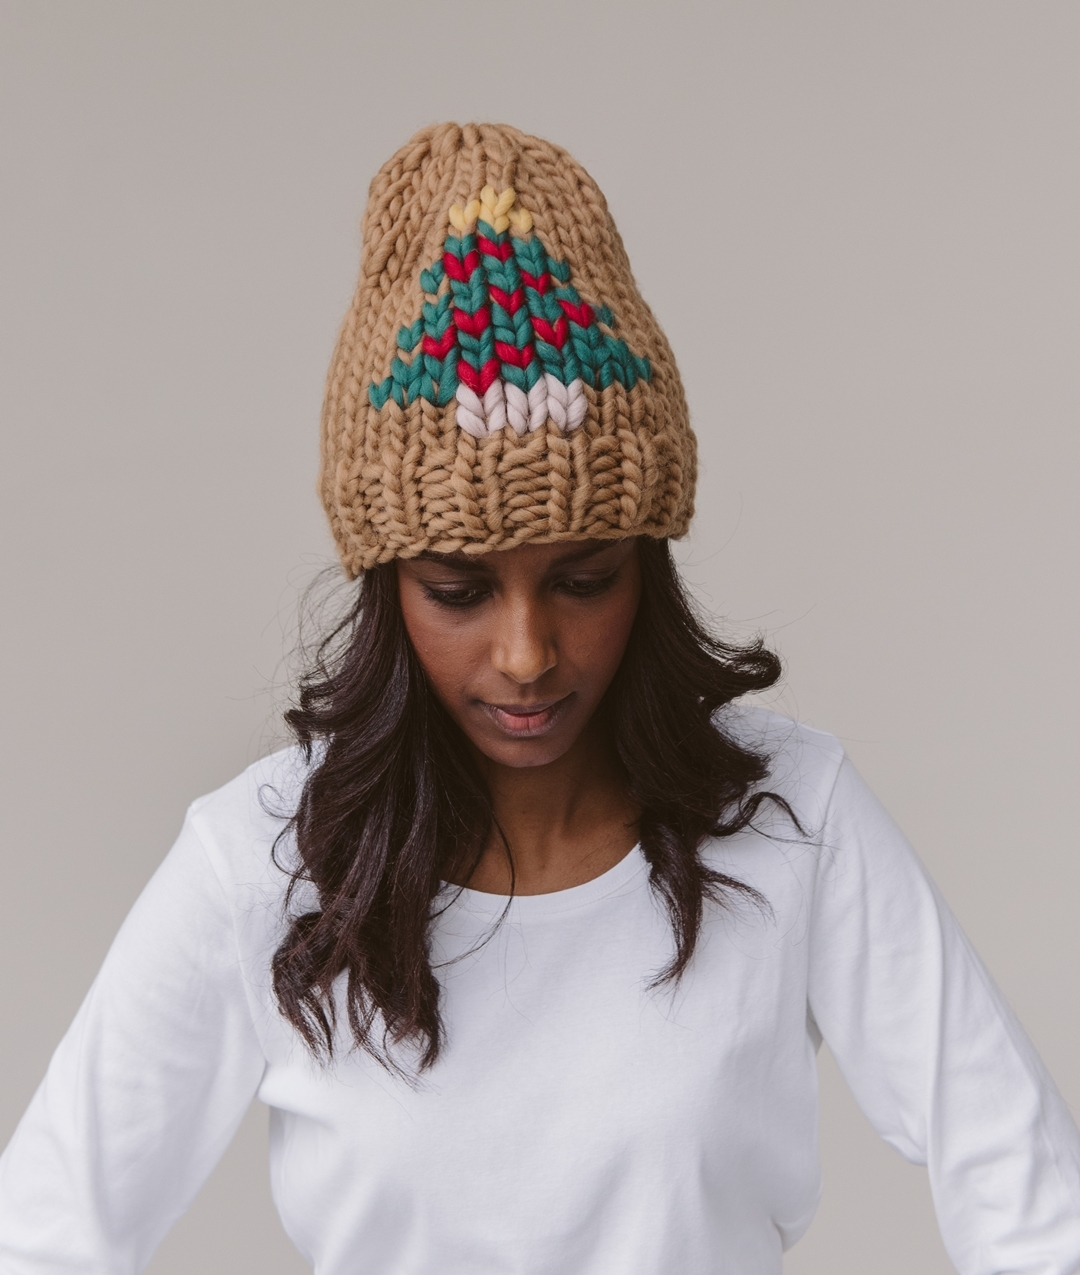 Hats and Beanies - WoolHats and Beanies - Wool - XMAS BEANIE - Xmas Tree - 1